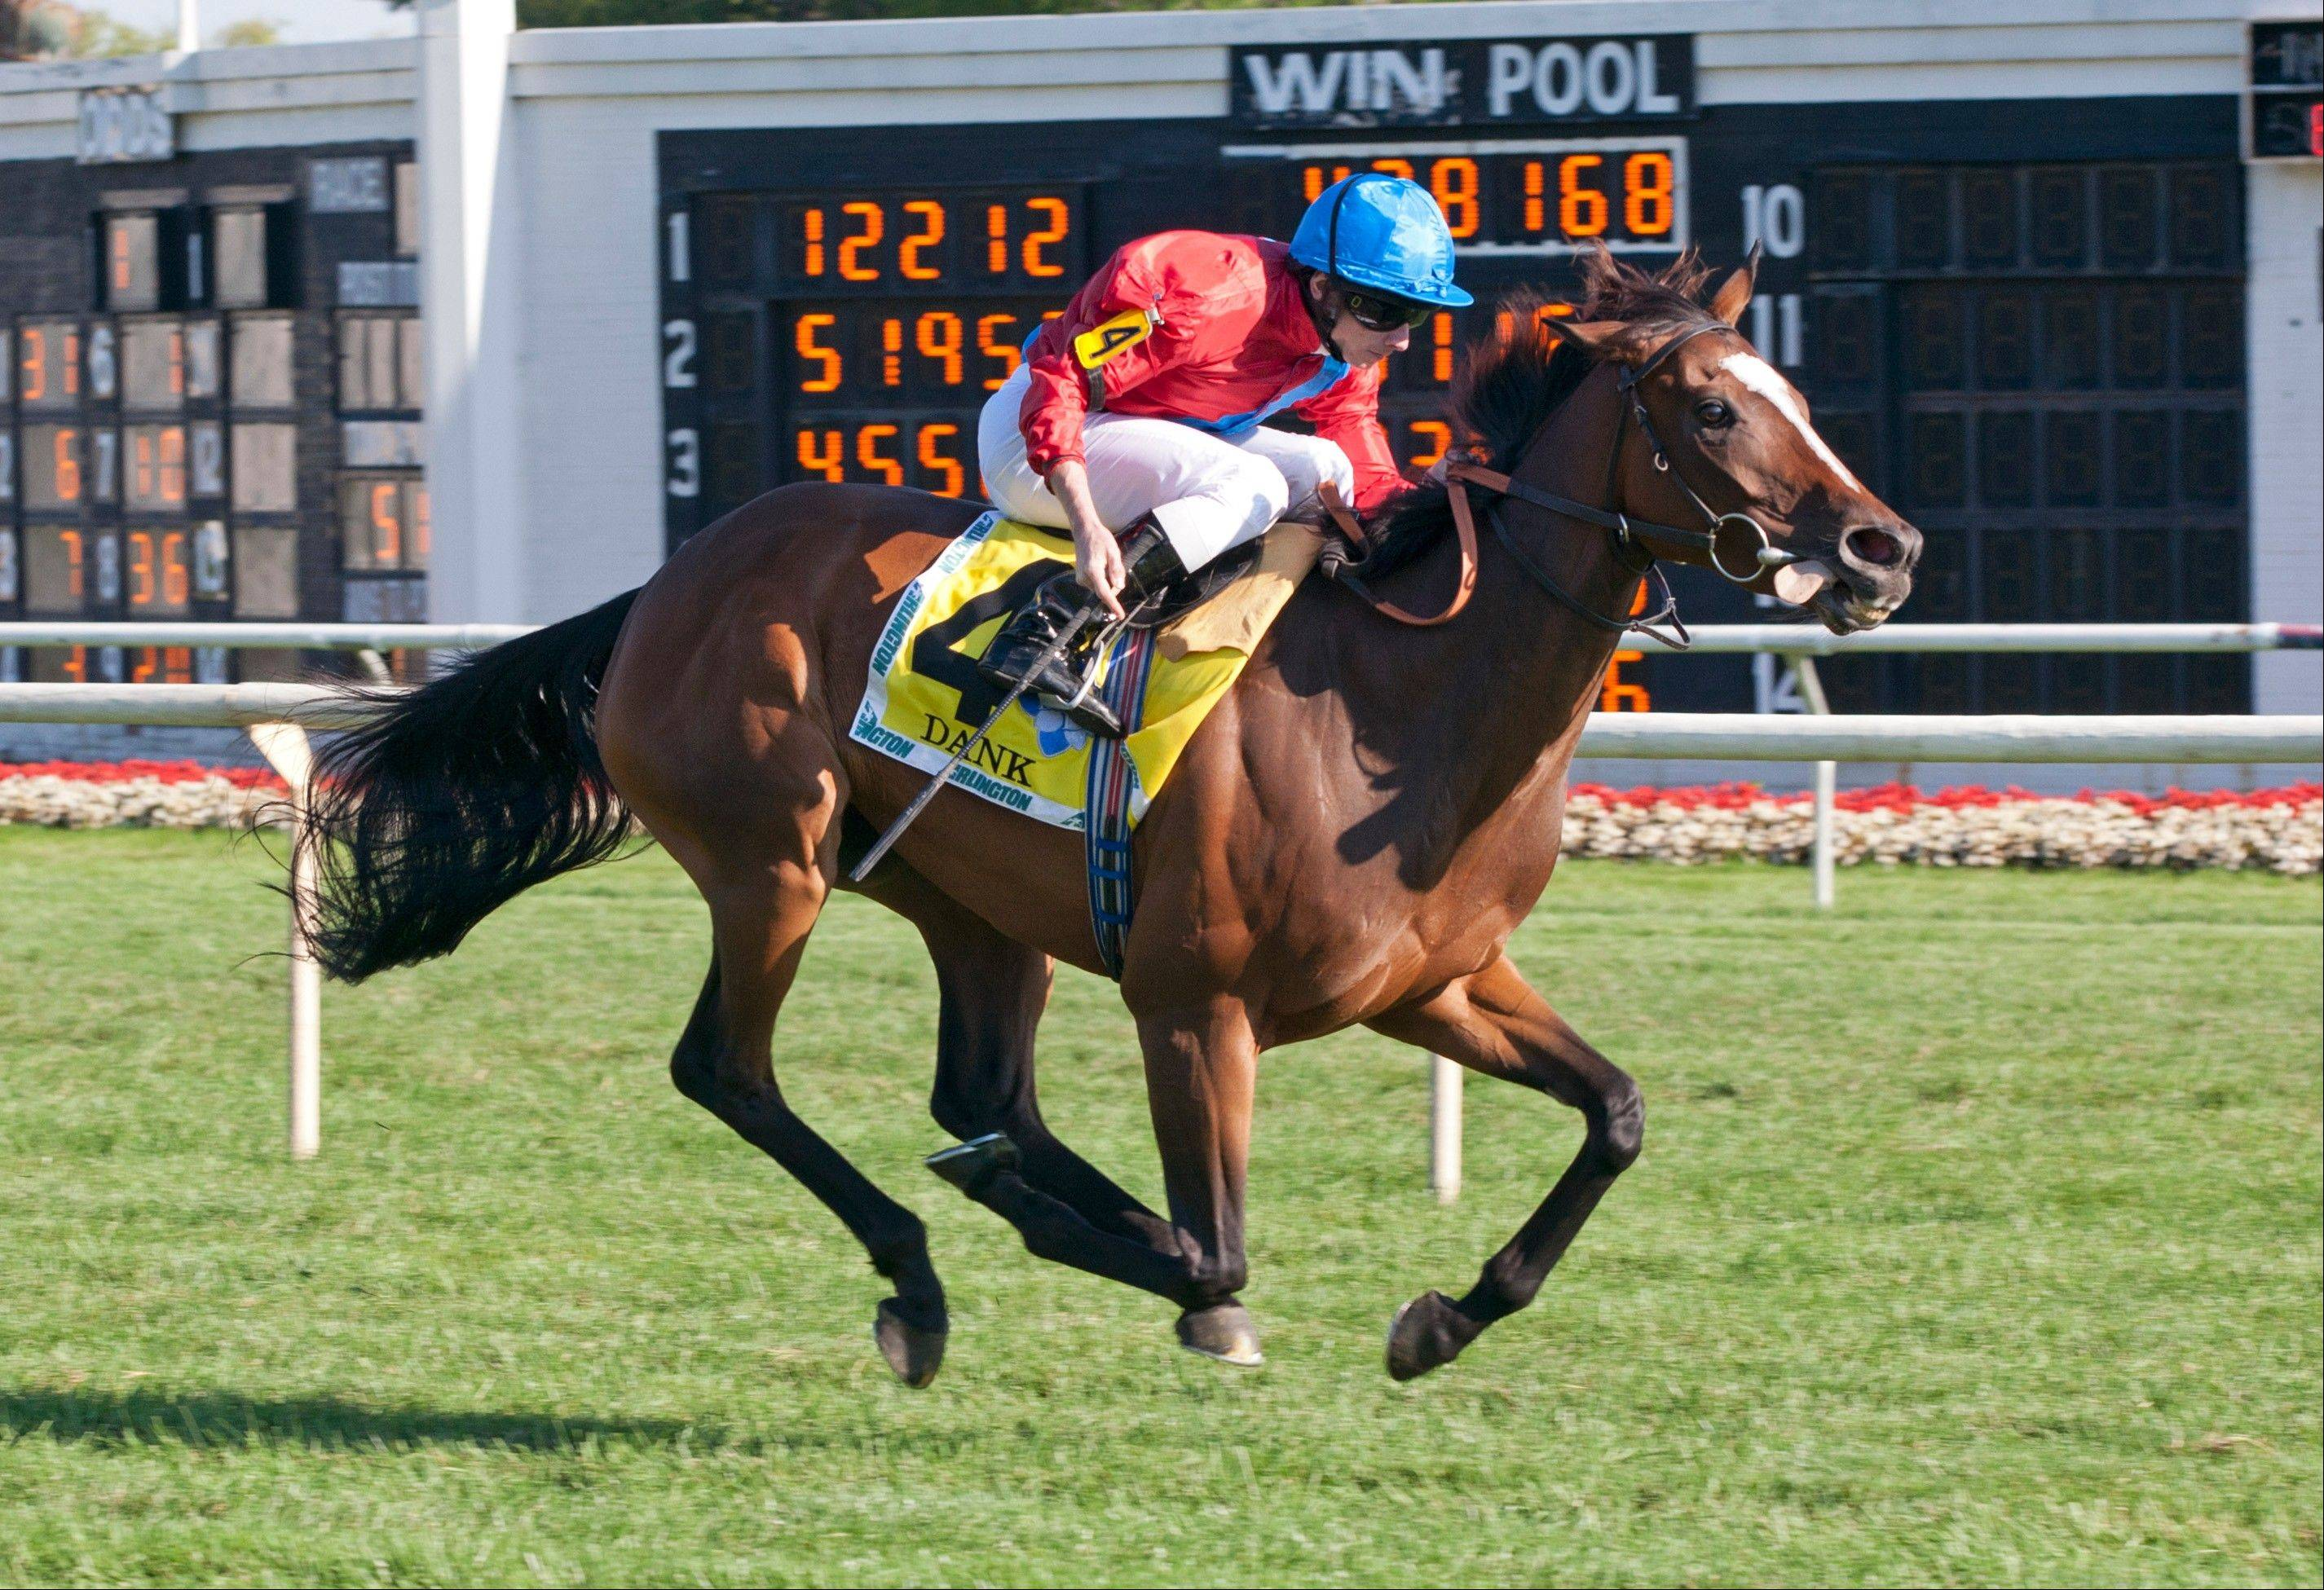 Beverly D winner Dank has won five of her last 10 races.